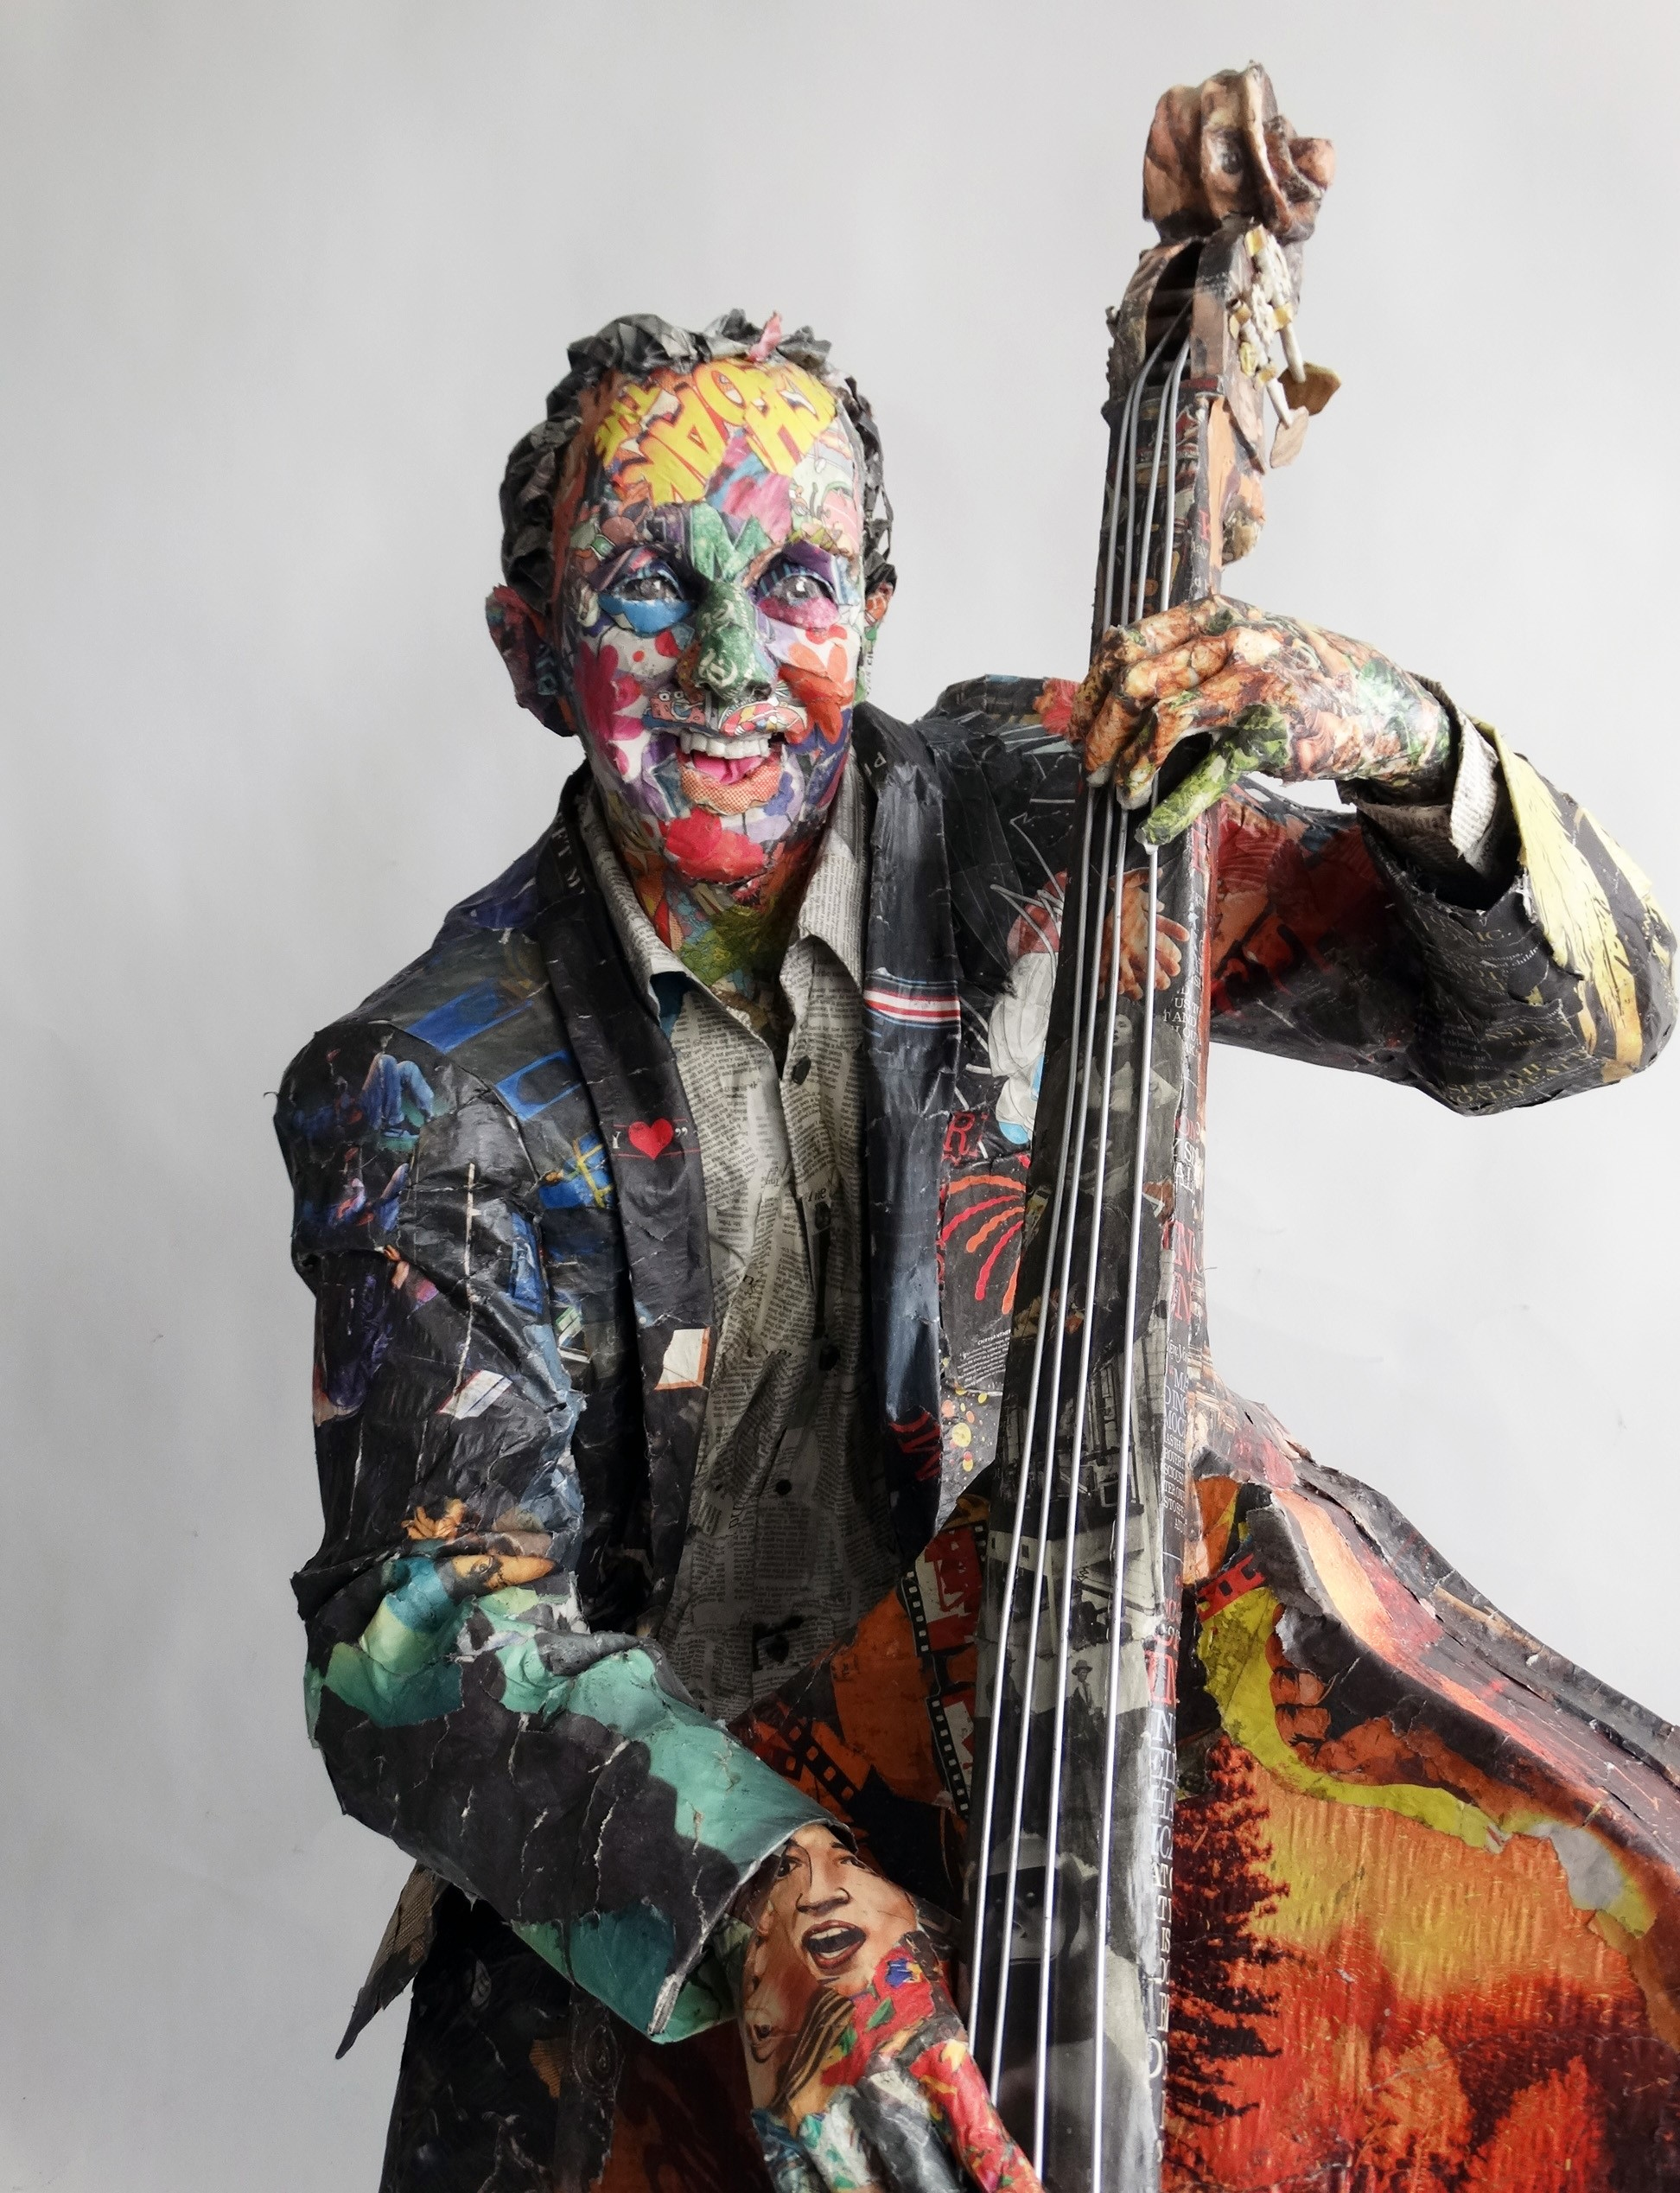 Will Kurtz, Bass Player, 2019. Wood, wire, cardboard, newspaper, tape, glue, matte medium, acid free spray, varnish. Unique work 74 x 44 x 40 in or 188 x 112 x 102 cm.